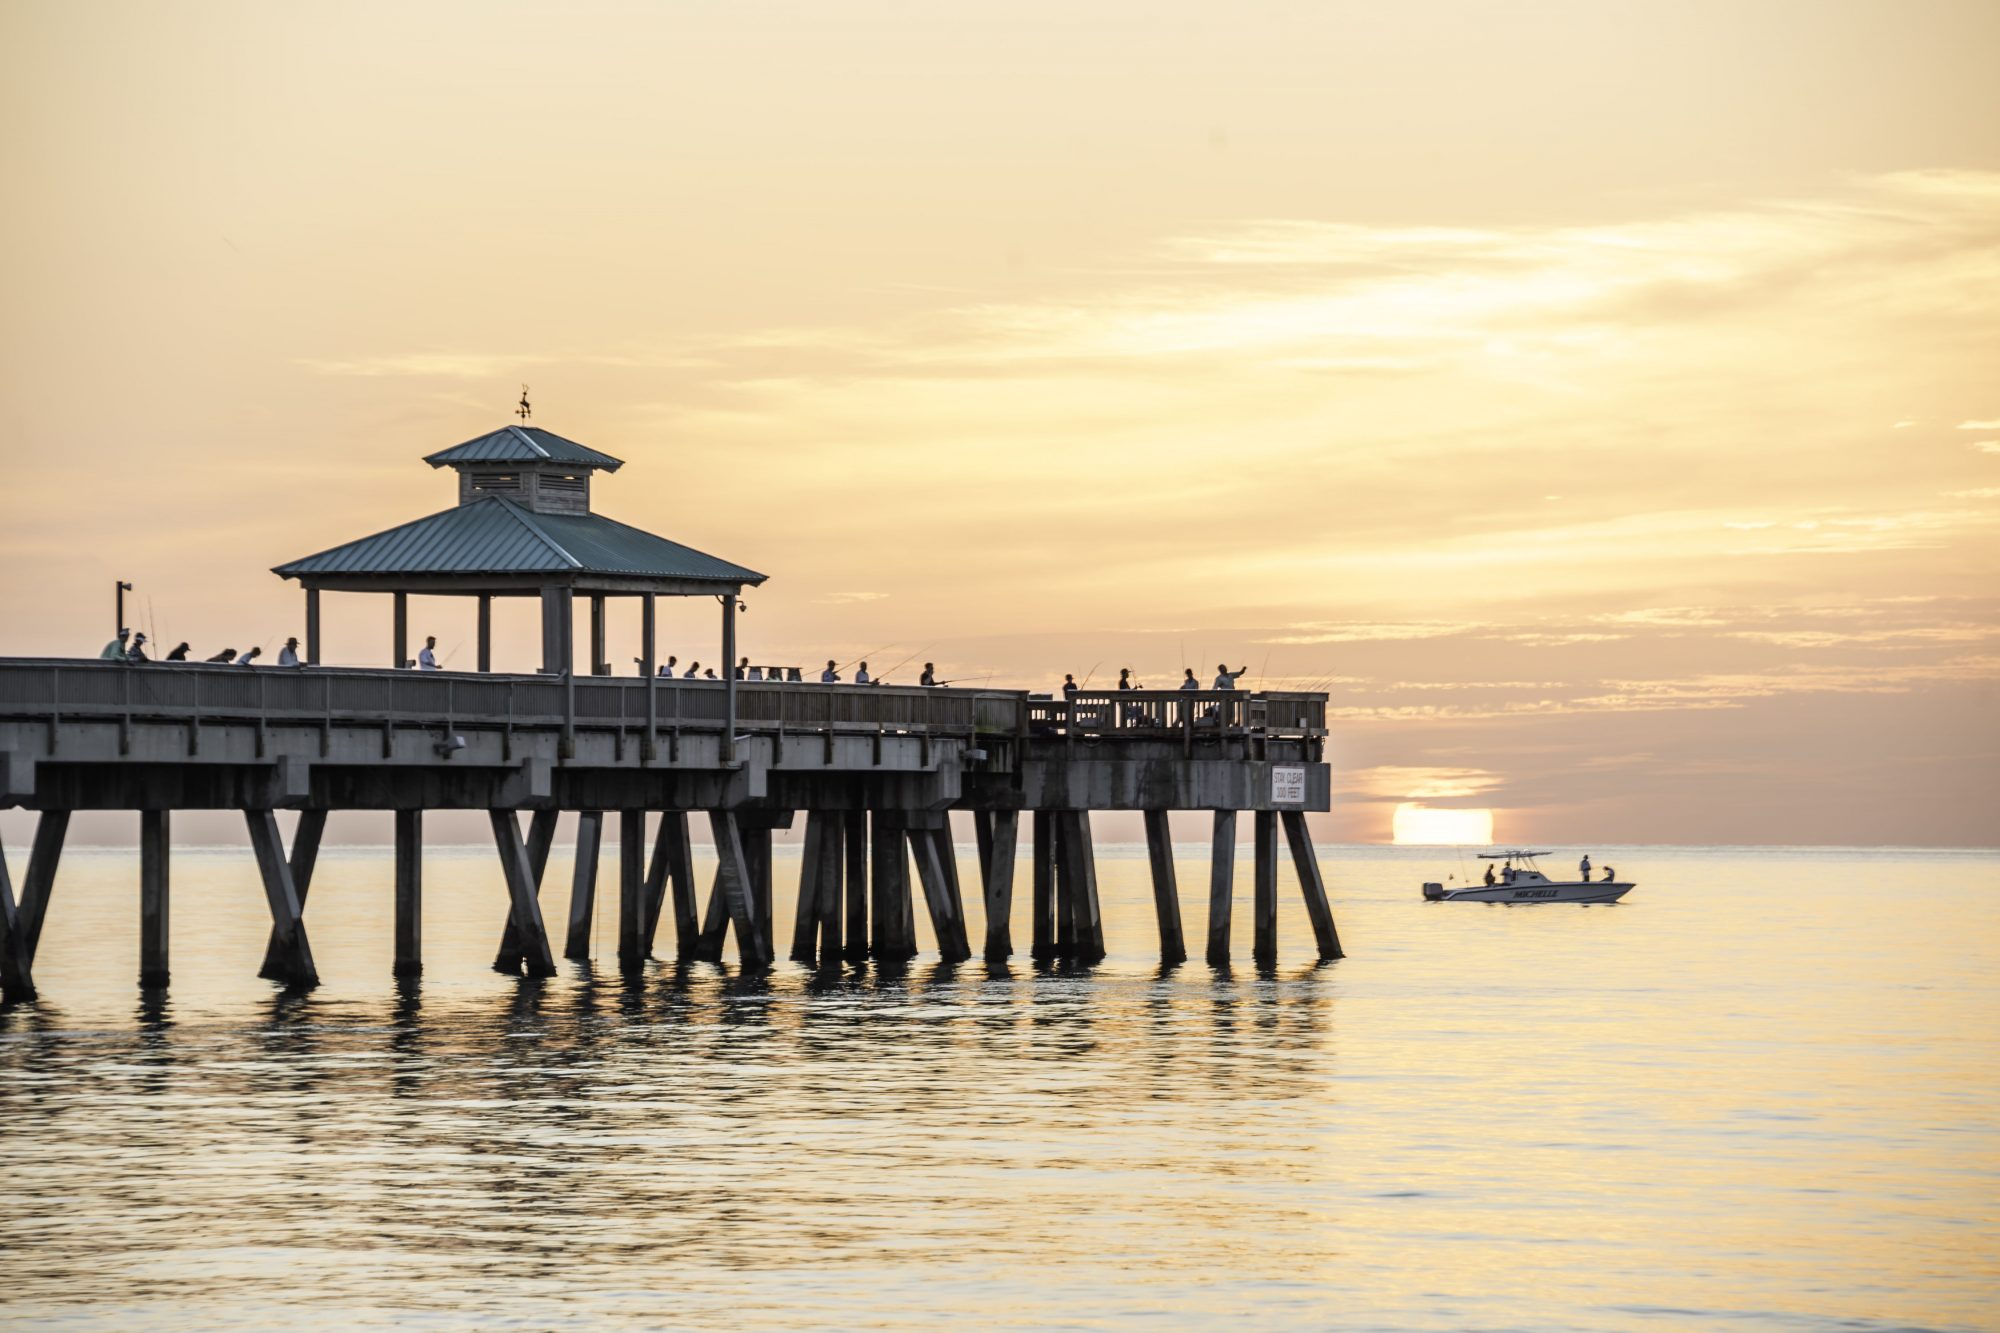 Deerfield Beach Florida Pier Fisherman at Dawn with boat